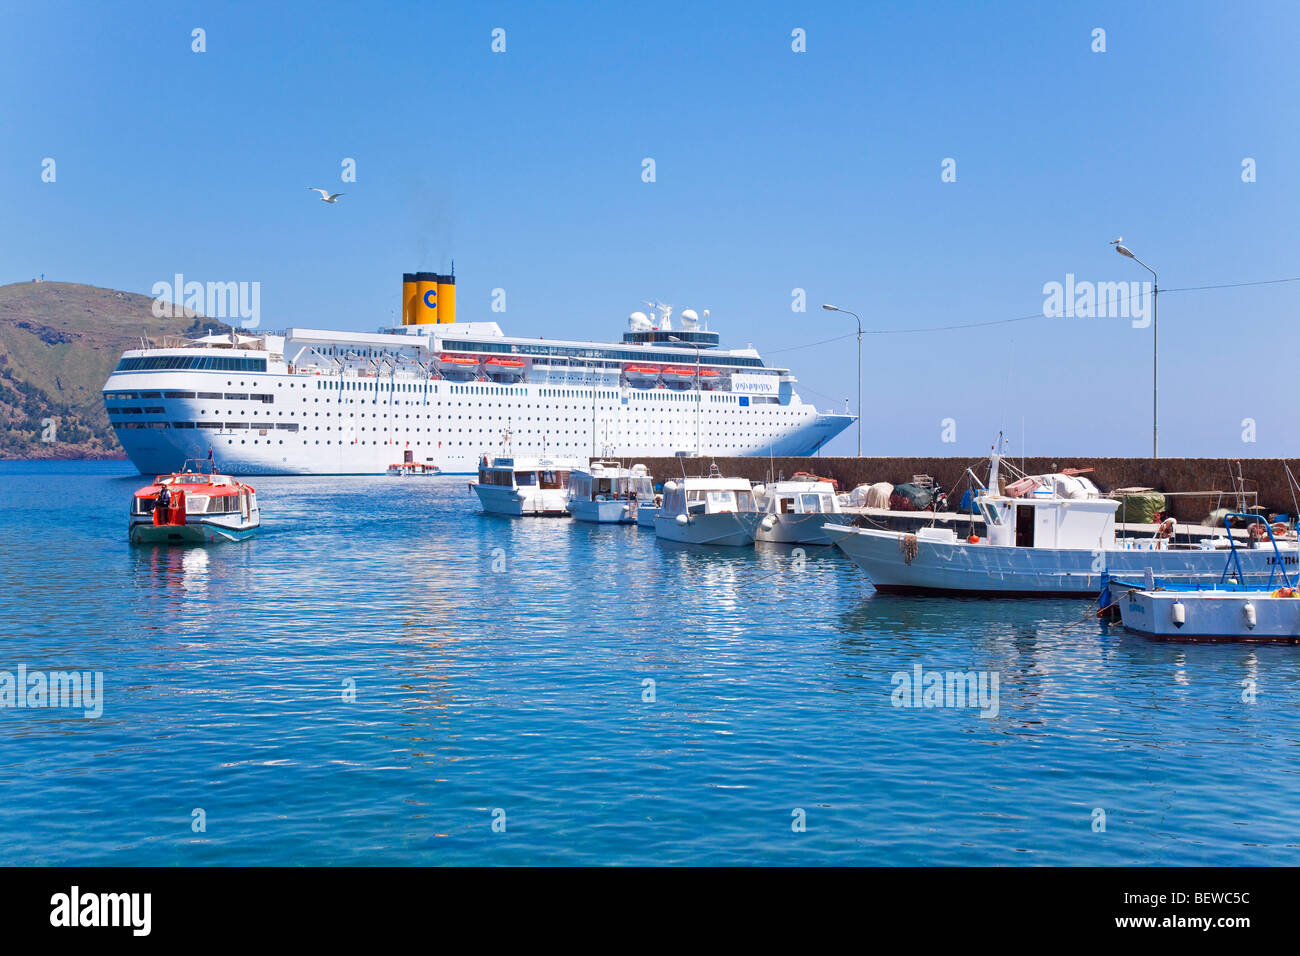 Cruise Ship Cost Romantica Before Lipari Italy Stock Photo - How much would it cost to buy a cruise ship